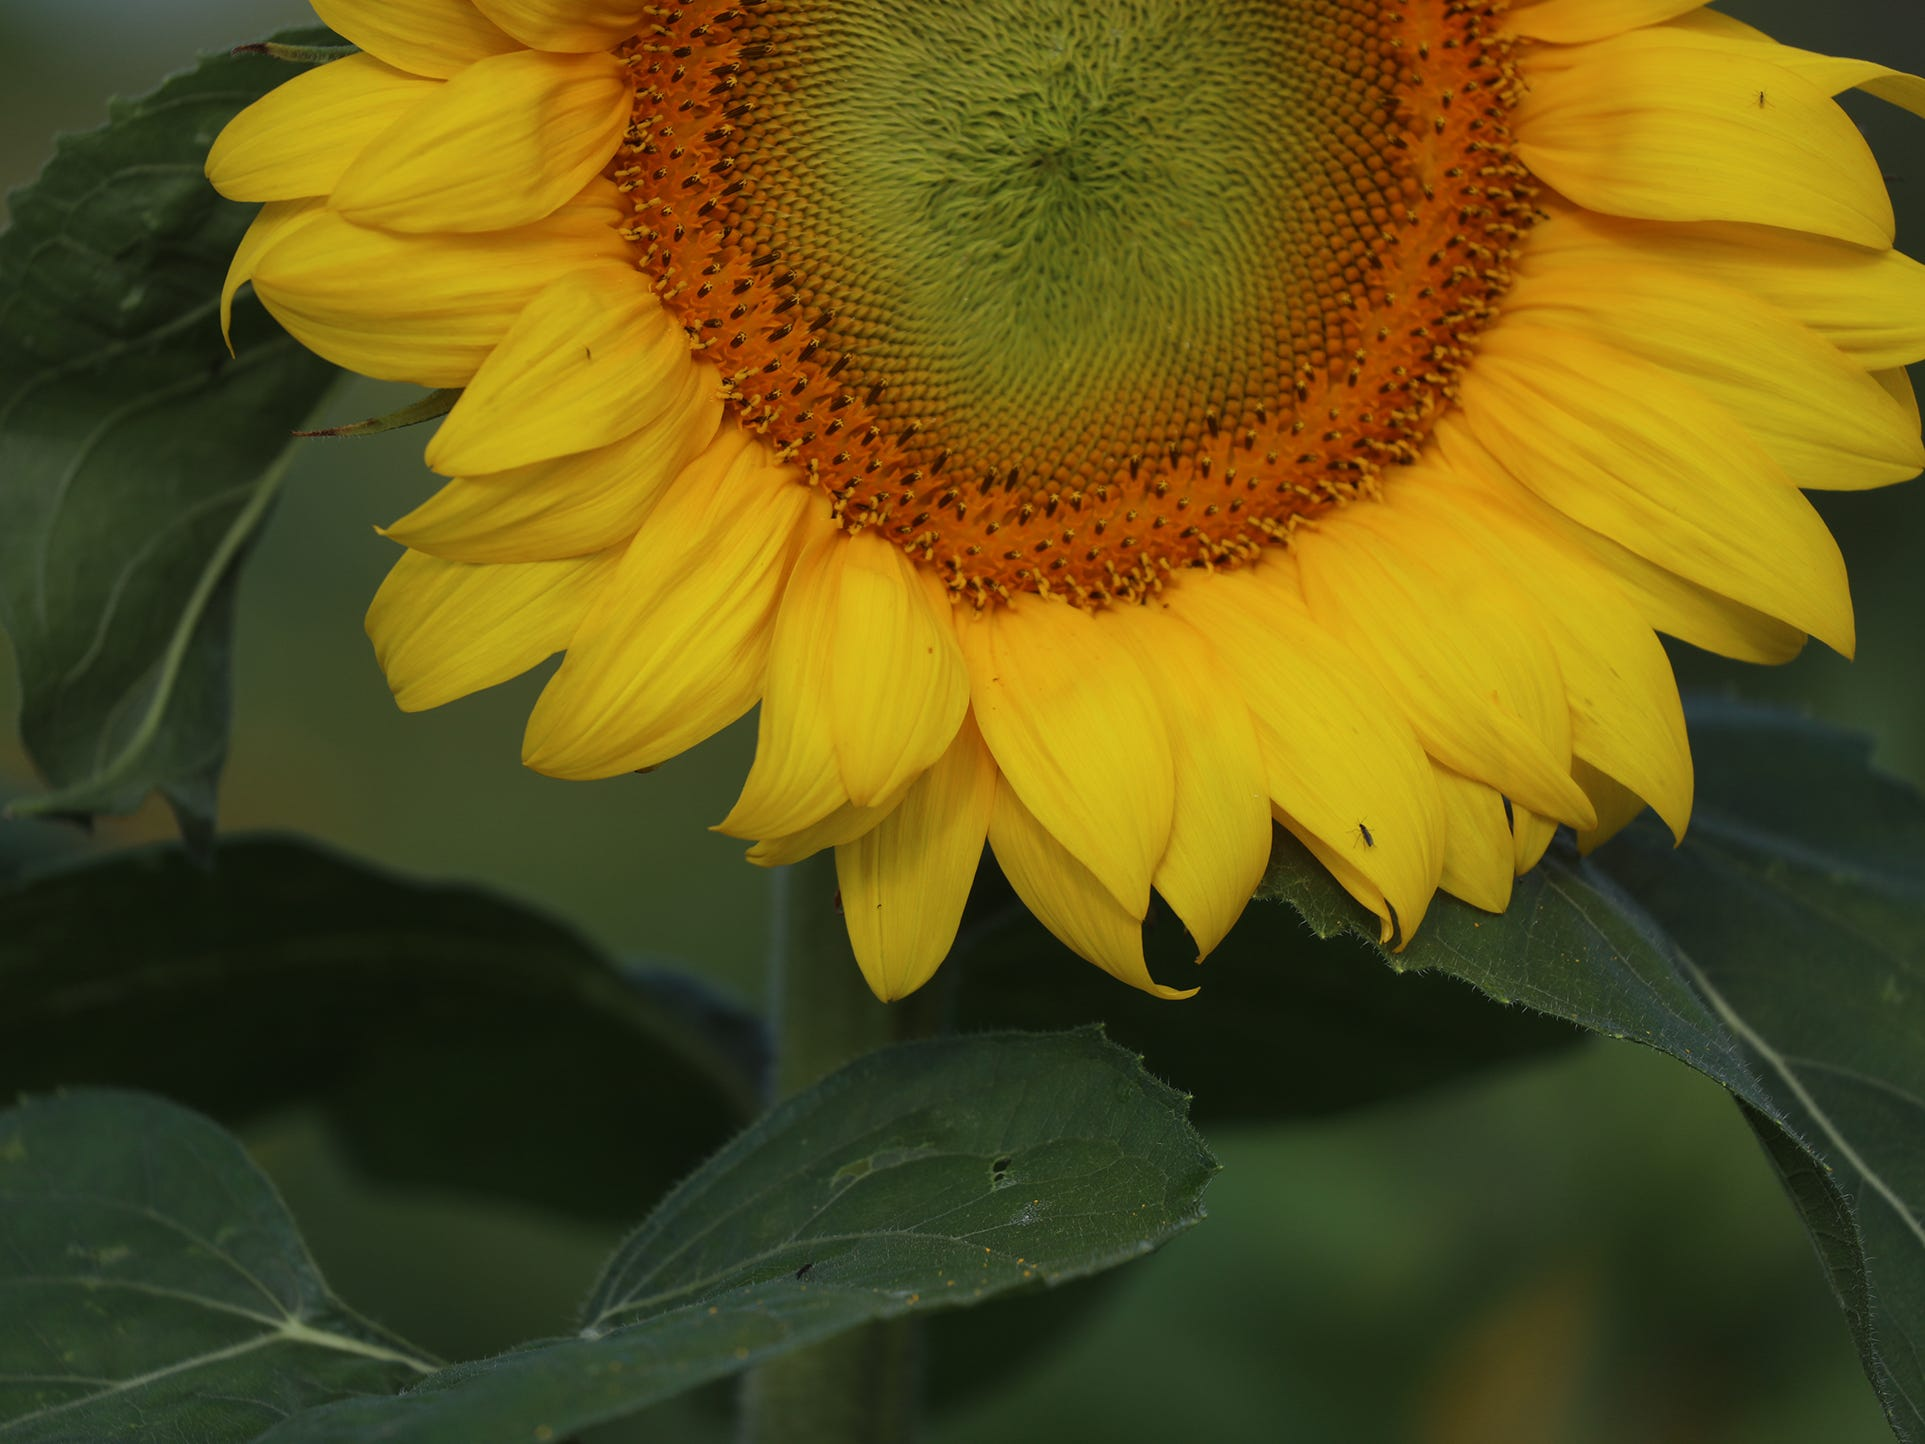 The sunflowers attract several types of insects looking for food.